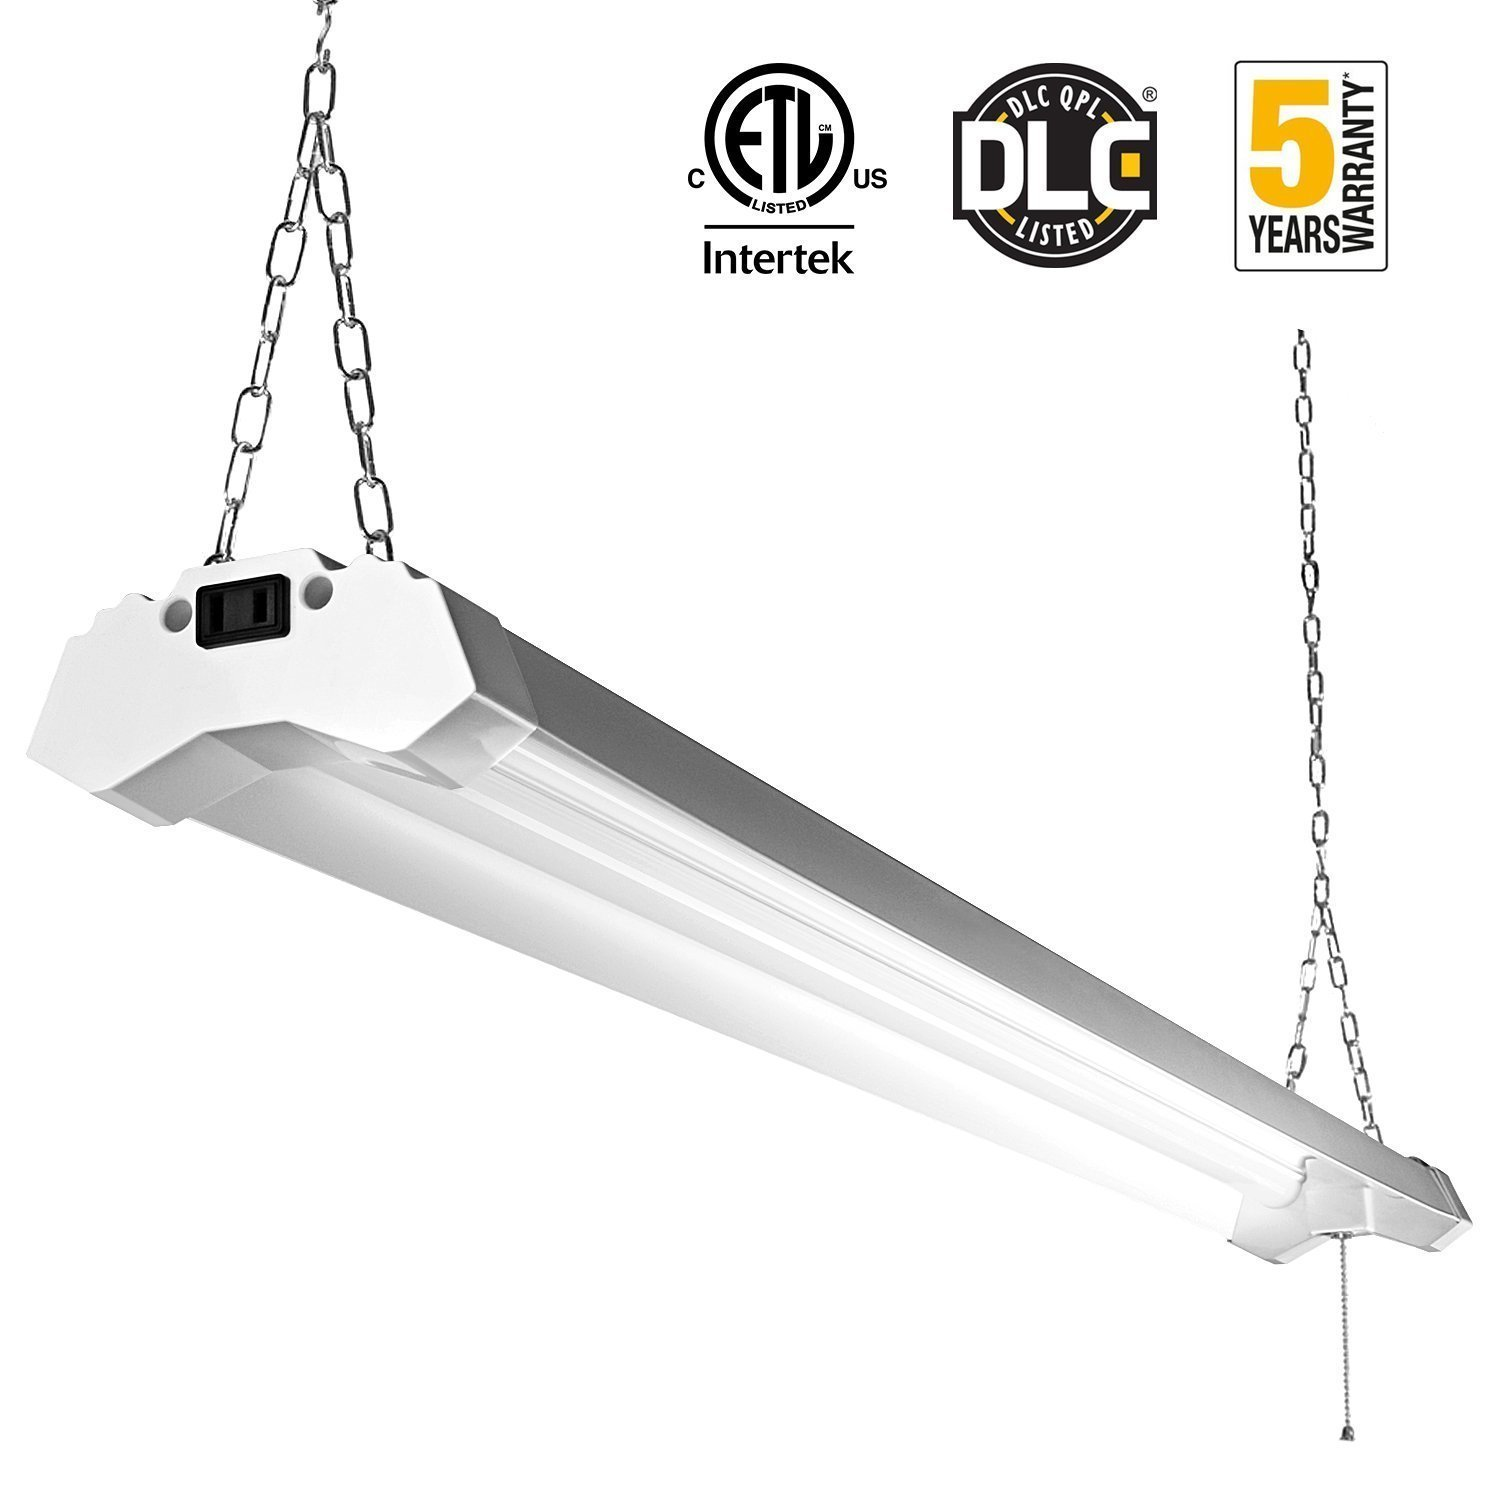 Linkable led utility shop light 4ft 4800 lumens super bright 40w linkable led utility shop light 4ft 4800 lumens super bright 40w 5000k daylight etl certified led garage lights fixture durable led fixture with pull chain arubaitofo Choice Image